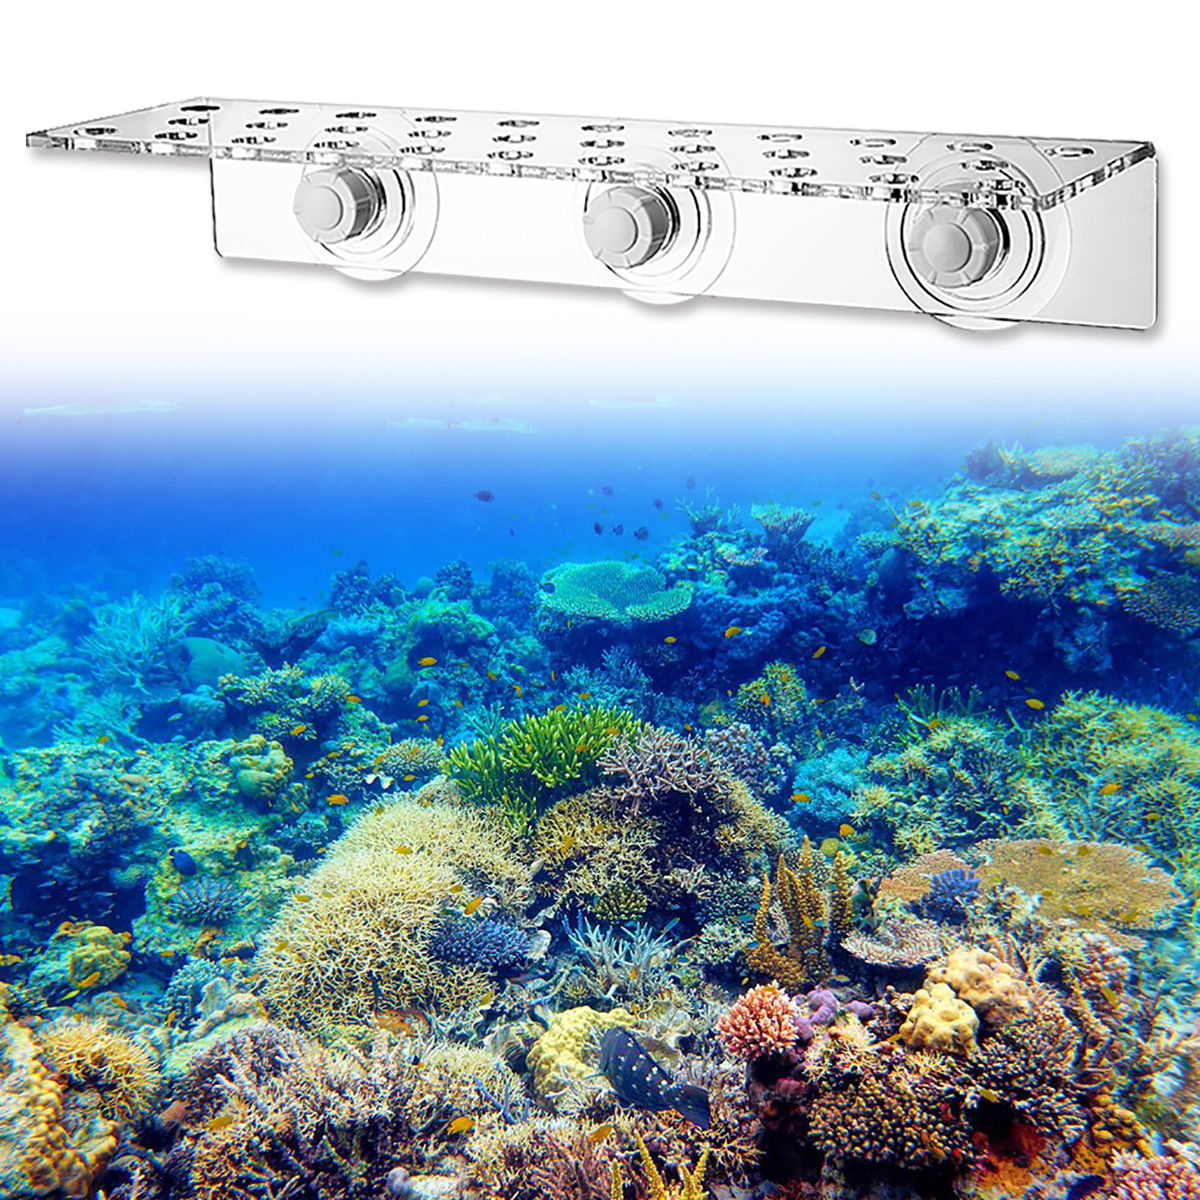 Coral Rack Acrylic Coral Frag Rack 13 Hole Coral Bracket Fish Tank Aquarium Plant Holder with Suction Cup